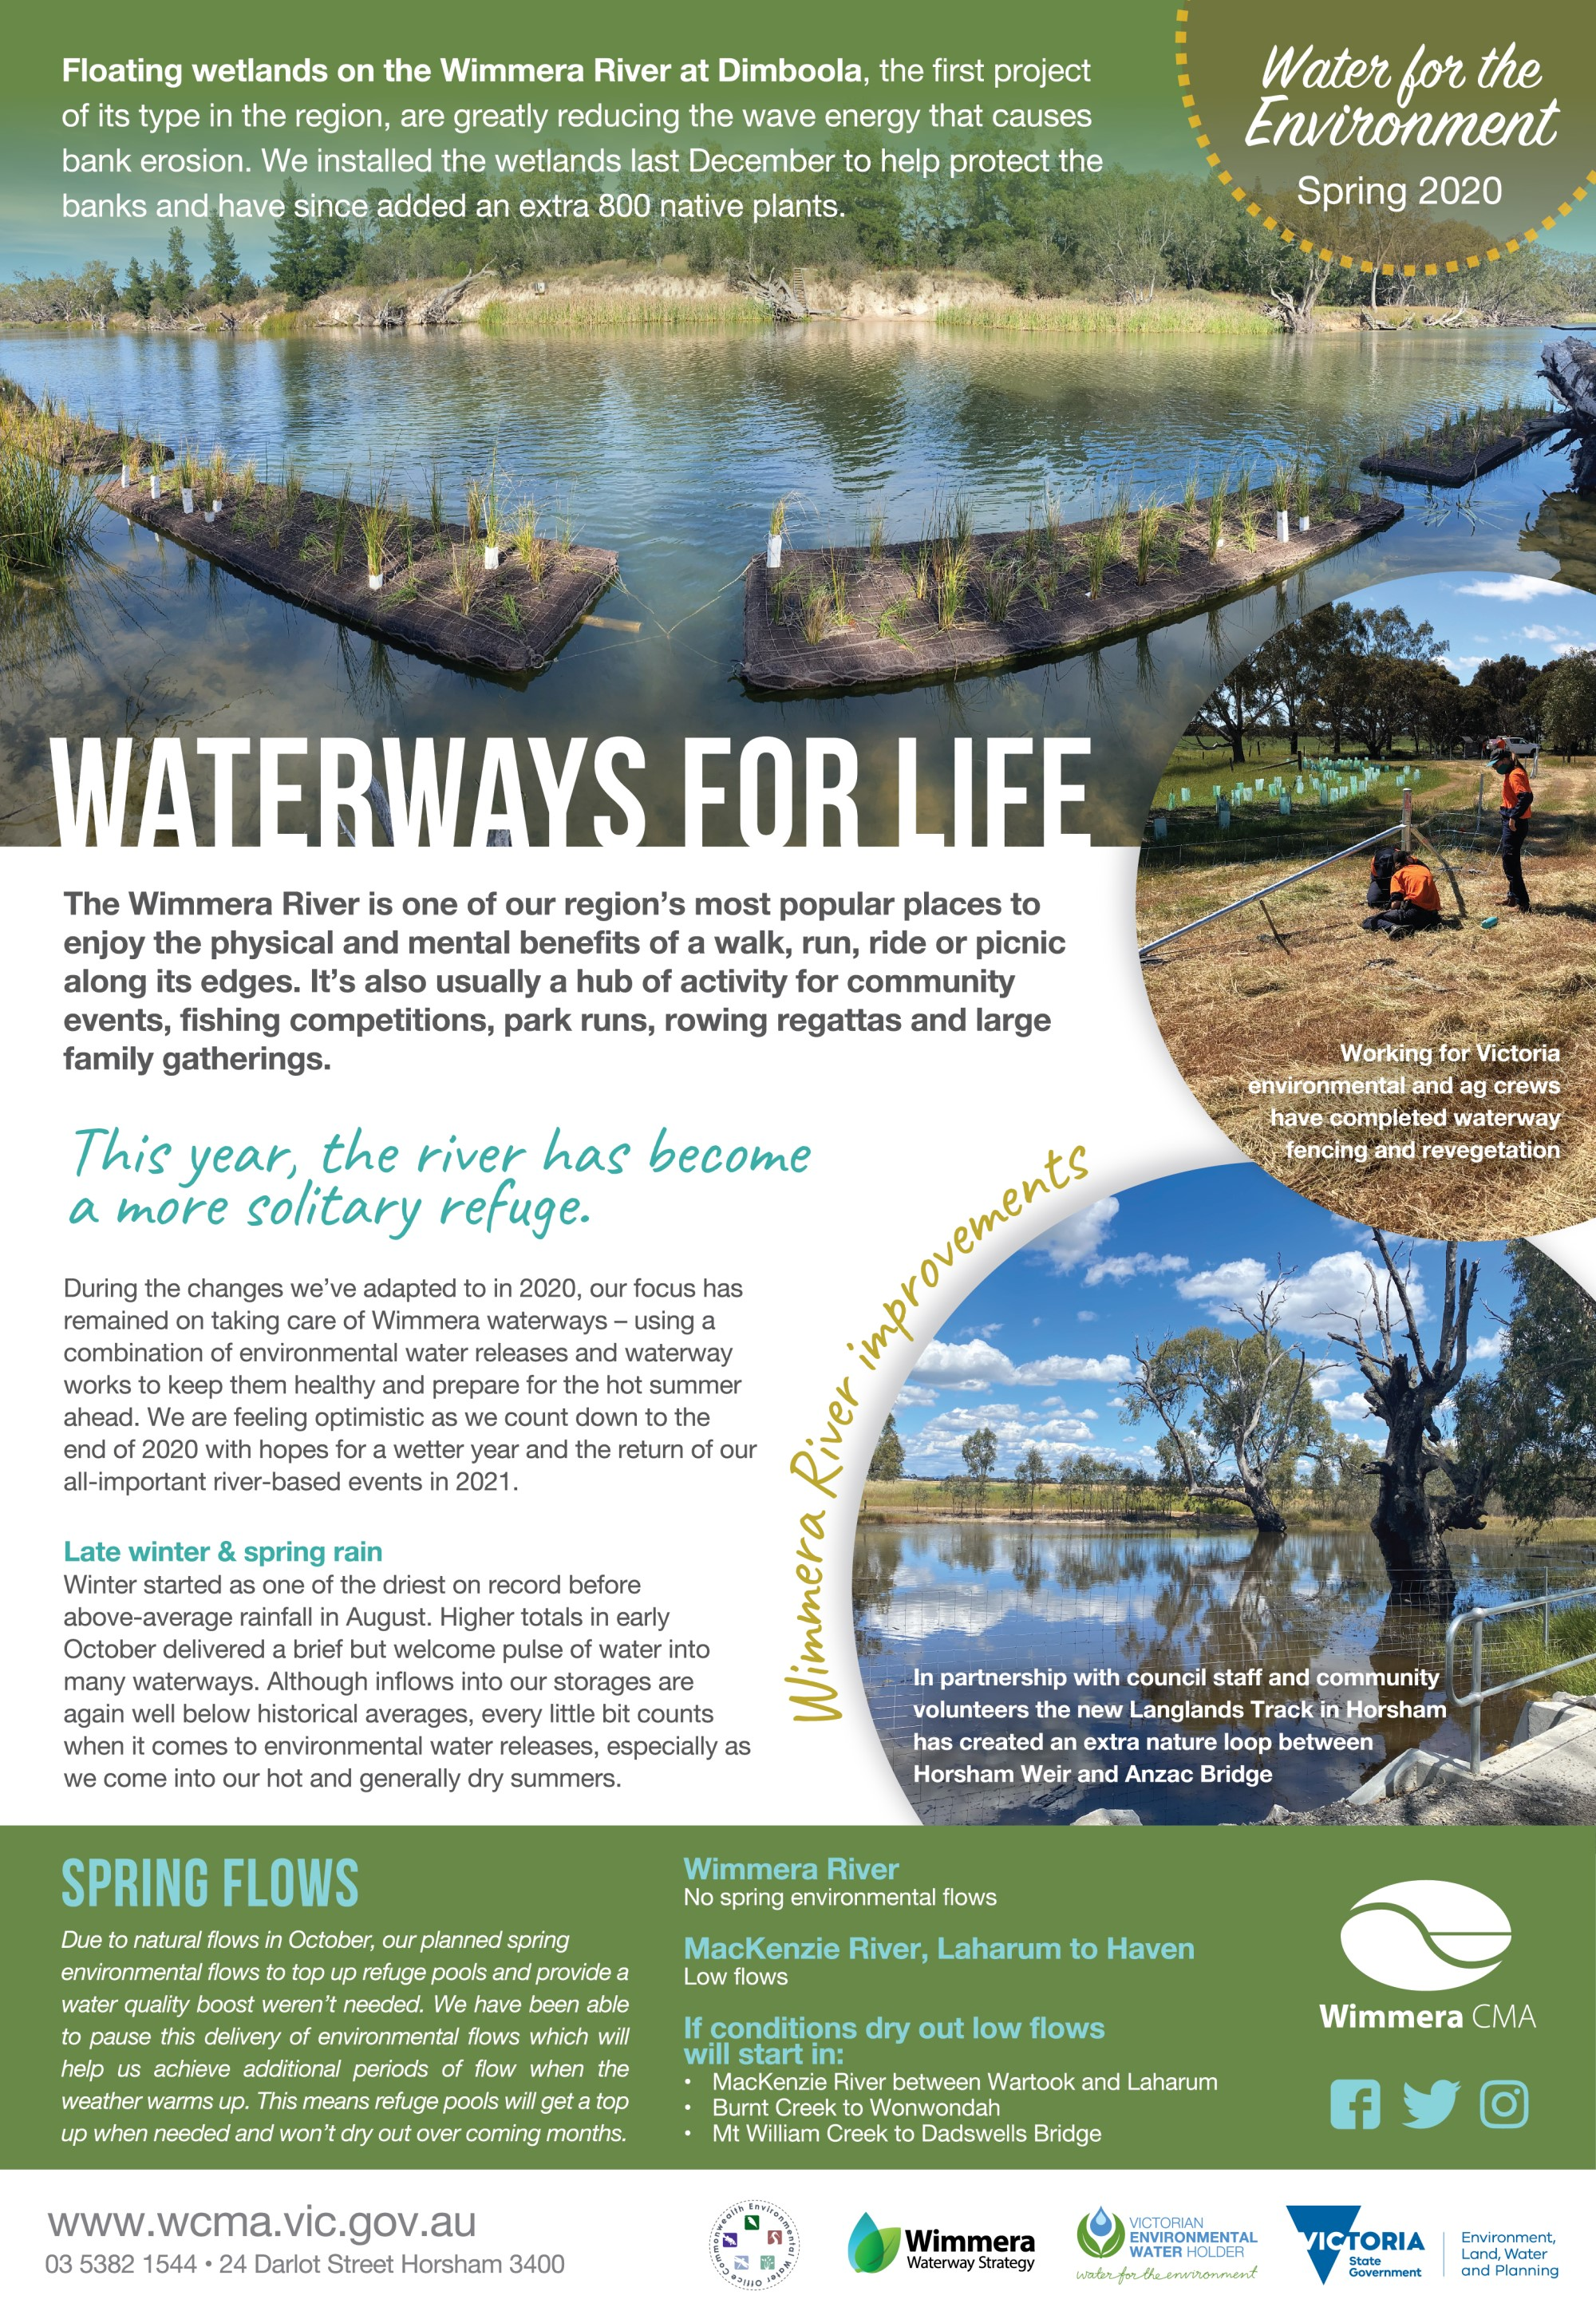 WCMA Spring Water for the Environment Update